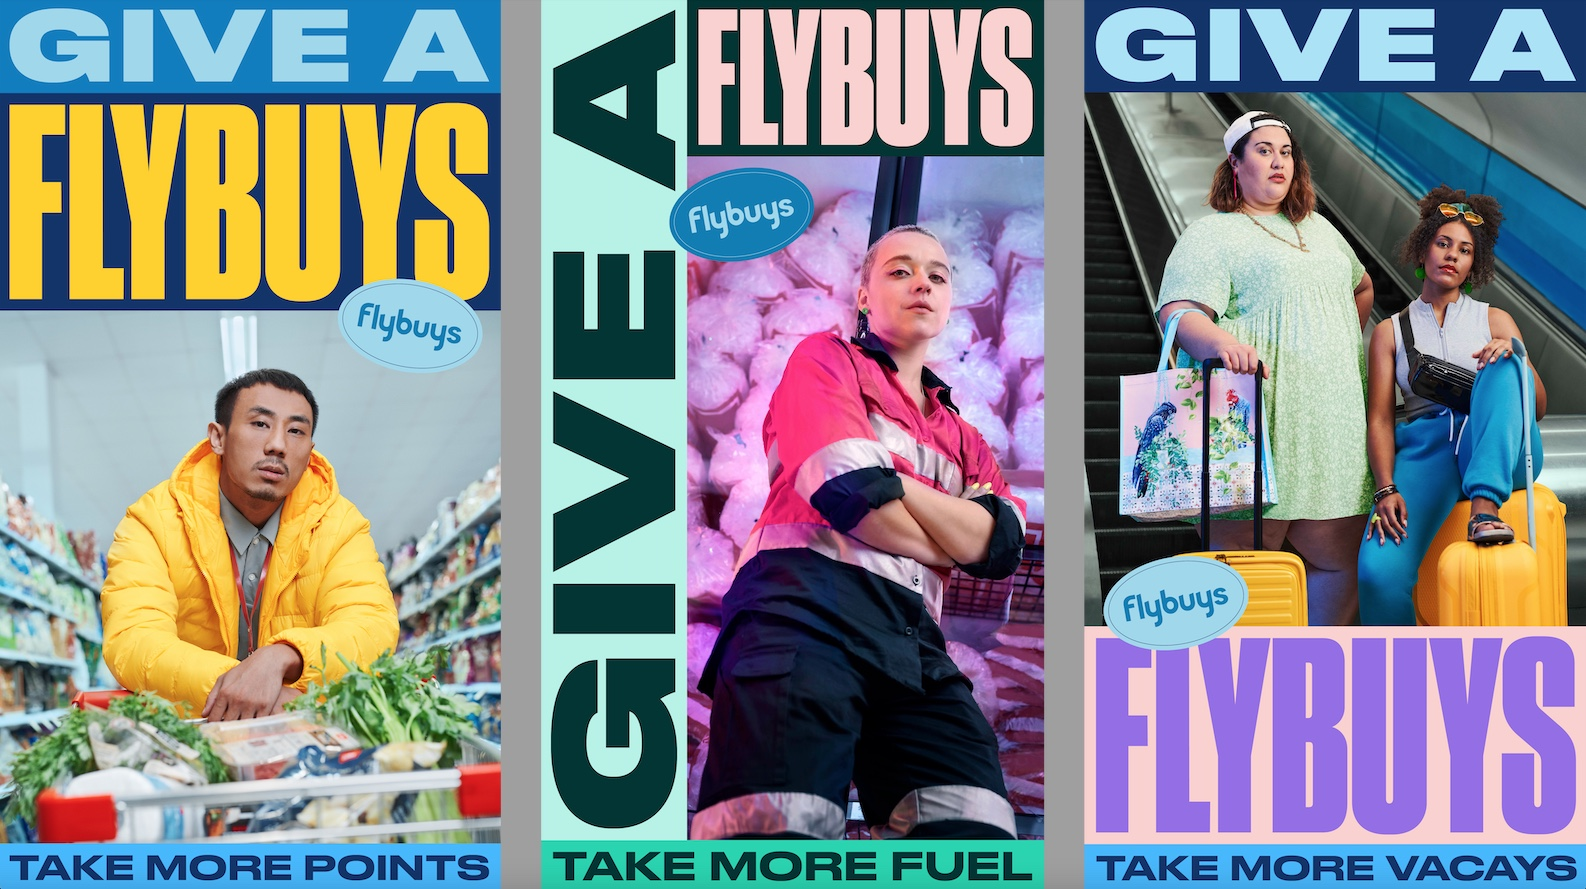 Flybuys captures 'Give a Flybuys' Aussie attitude in latest brand campaign via CHE Proximity